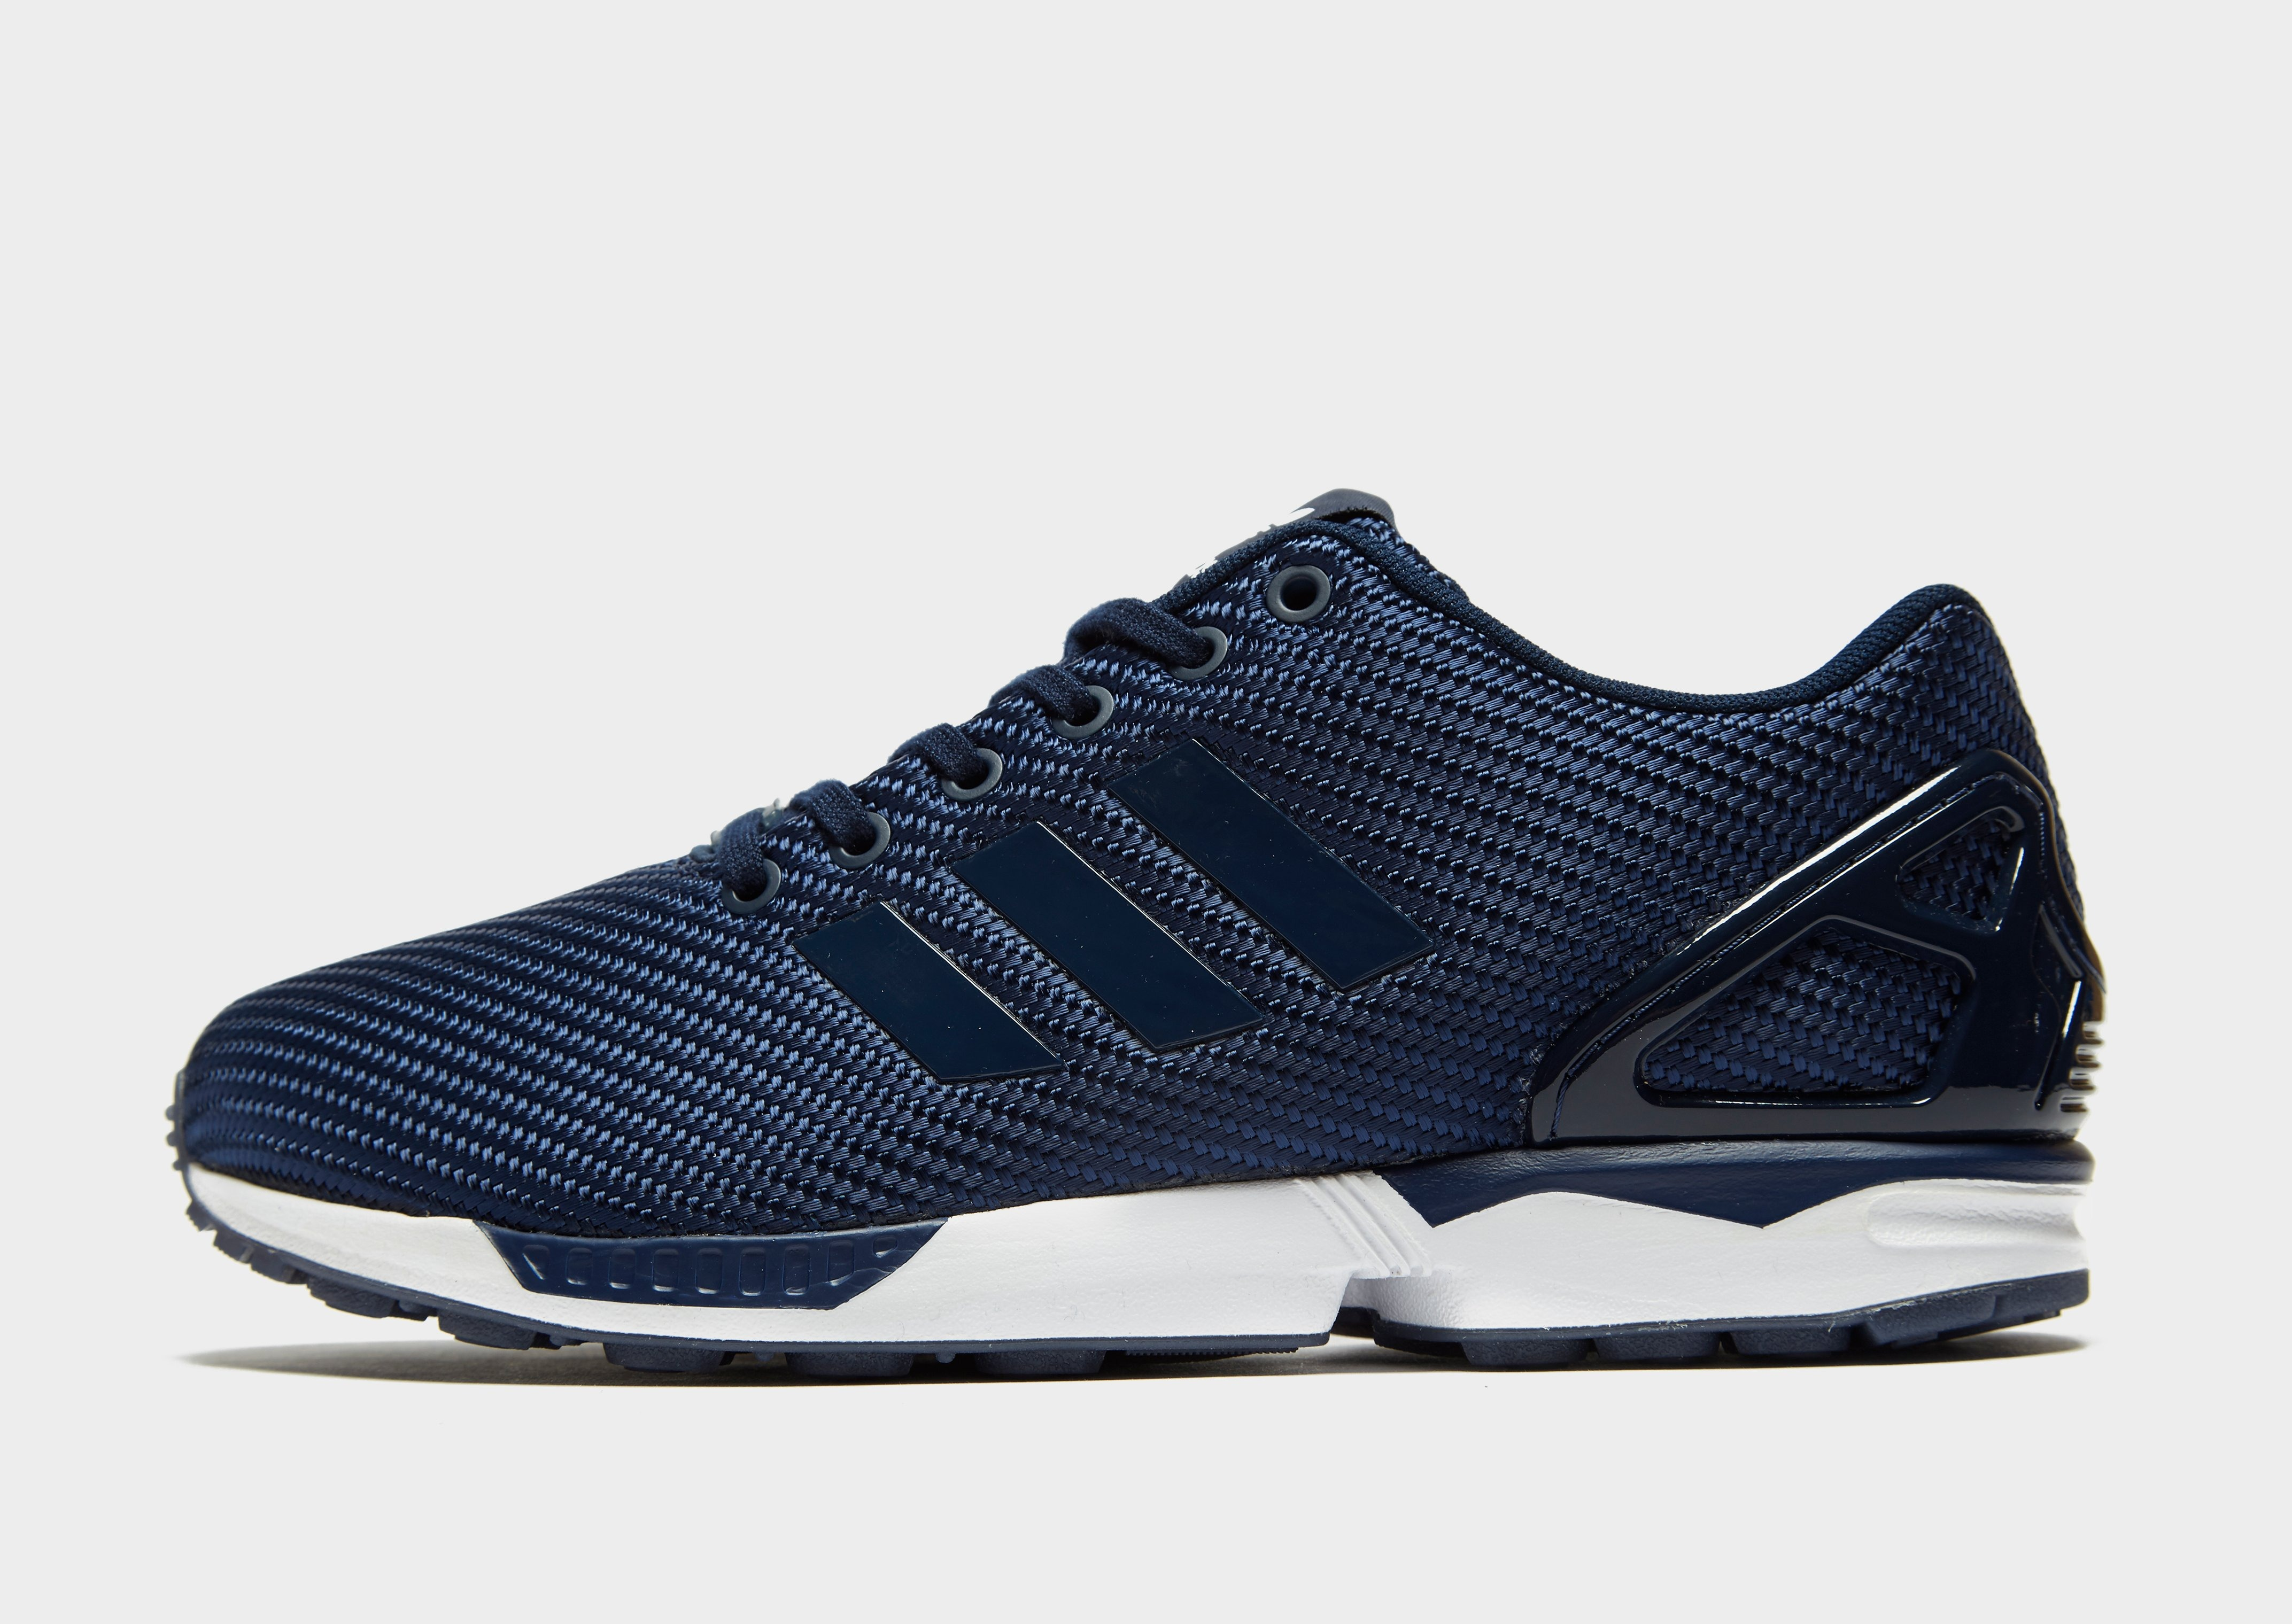 Adidas Zx Flux Black : Buy Discount Adidas Shoes for Men